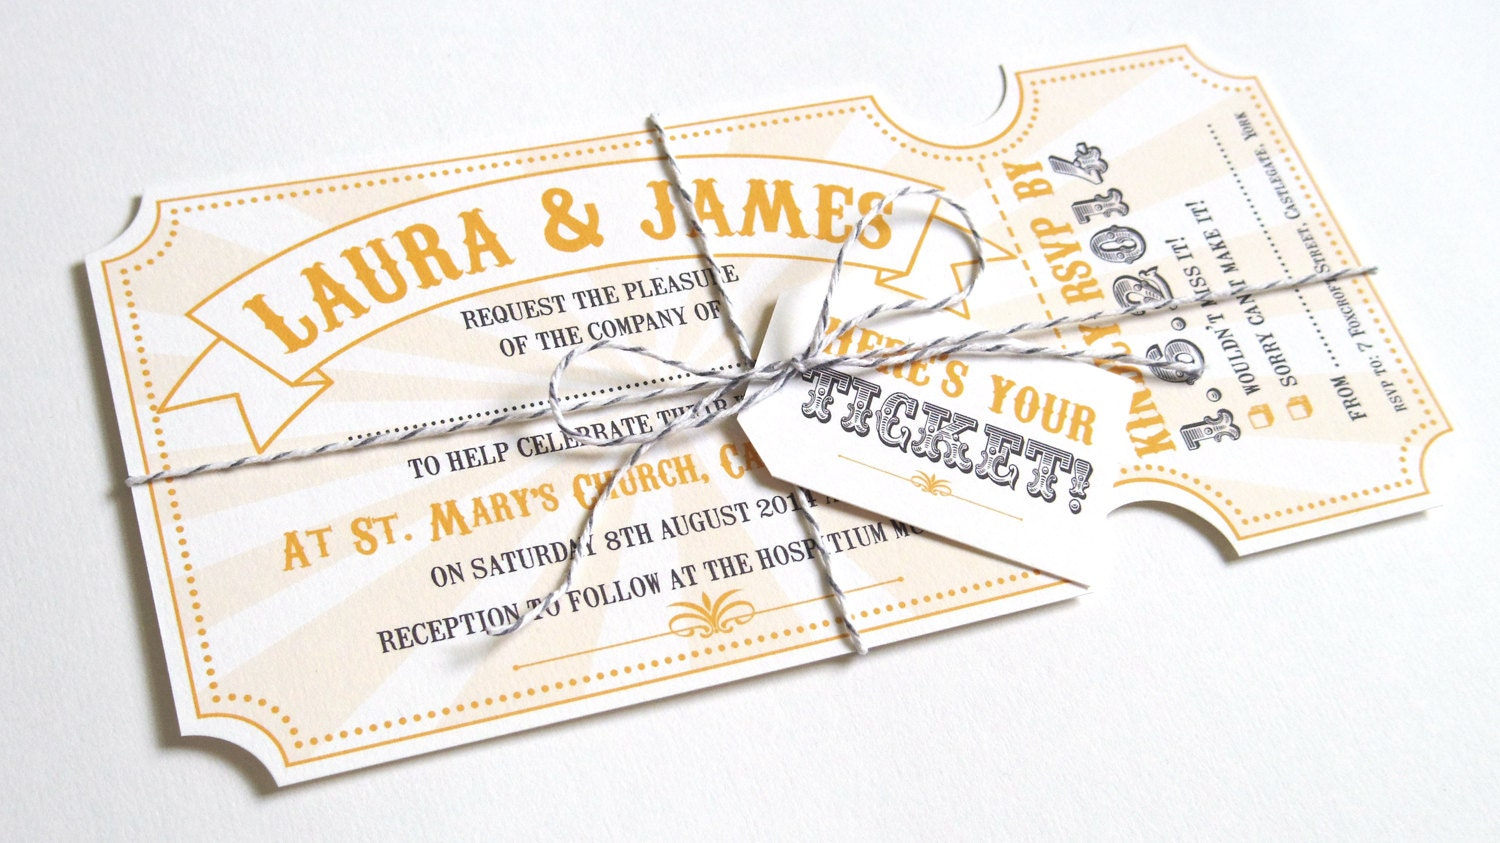 Wedding Invitation Tickets: Circus Ticket Wedding Invitations Fun Fair Carnival